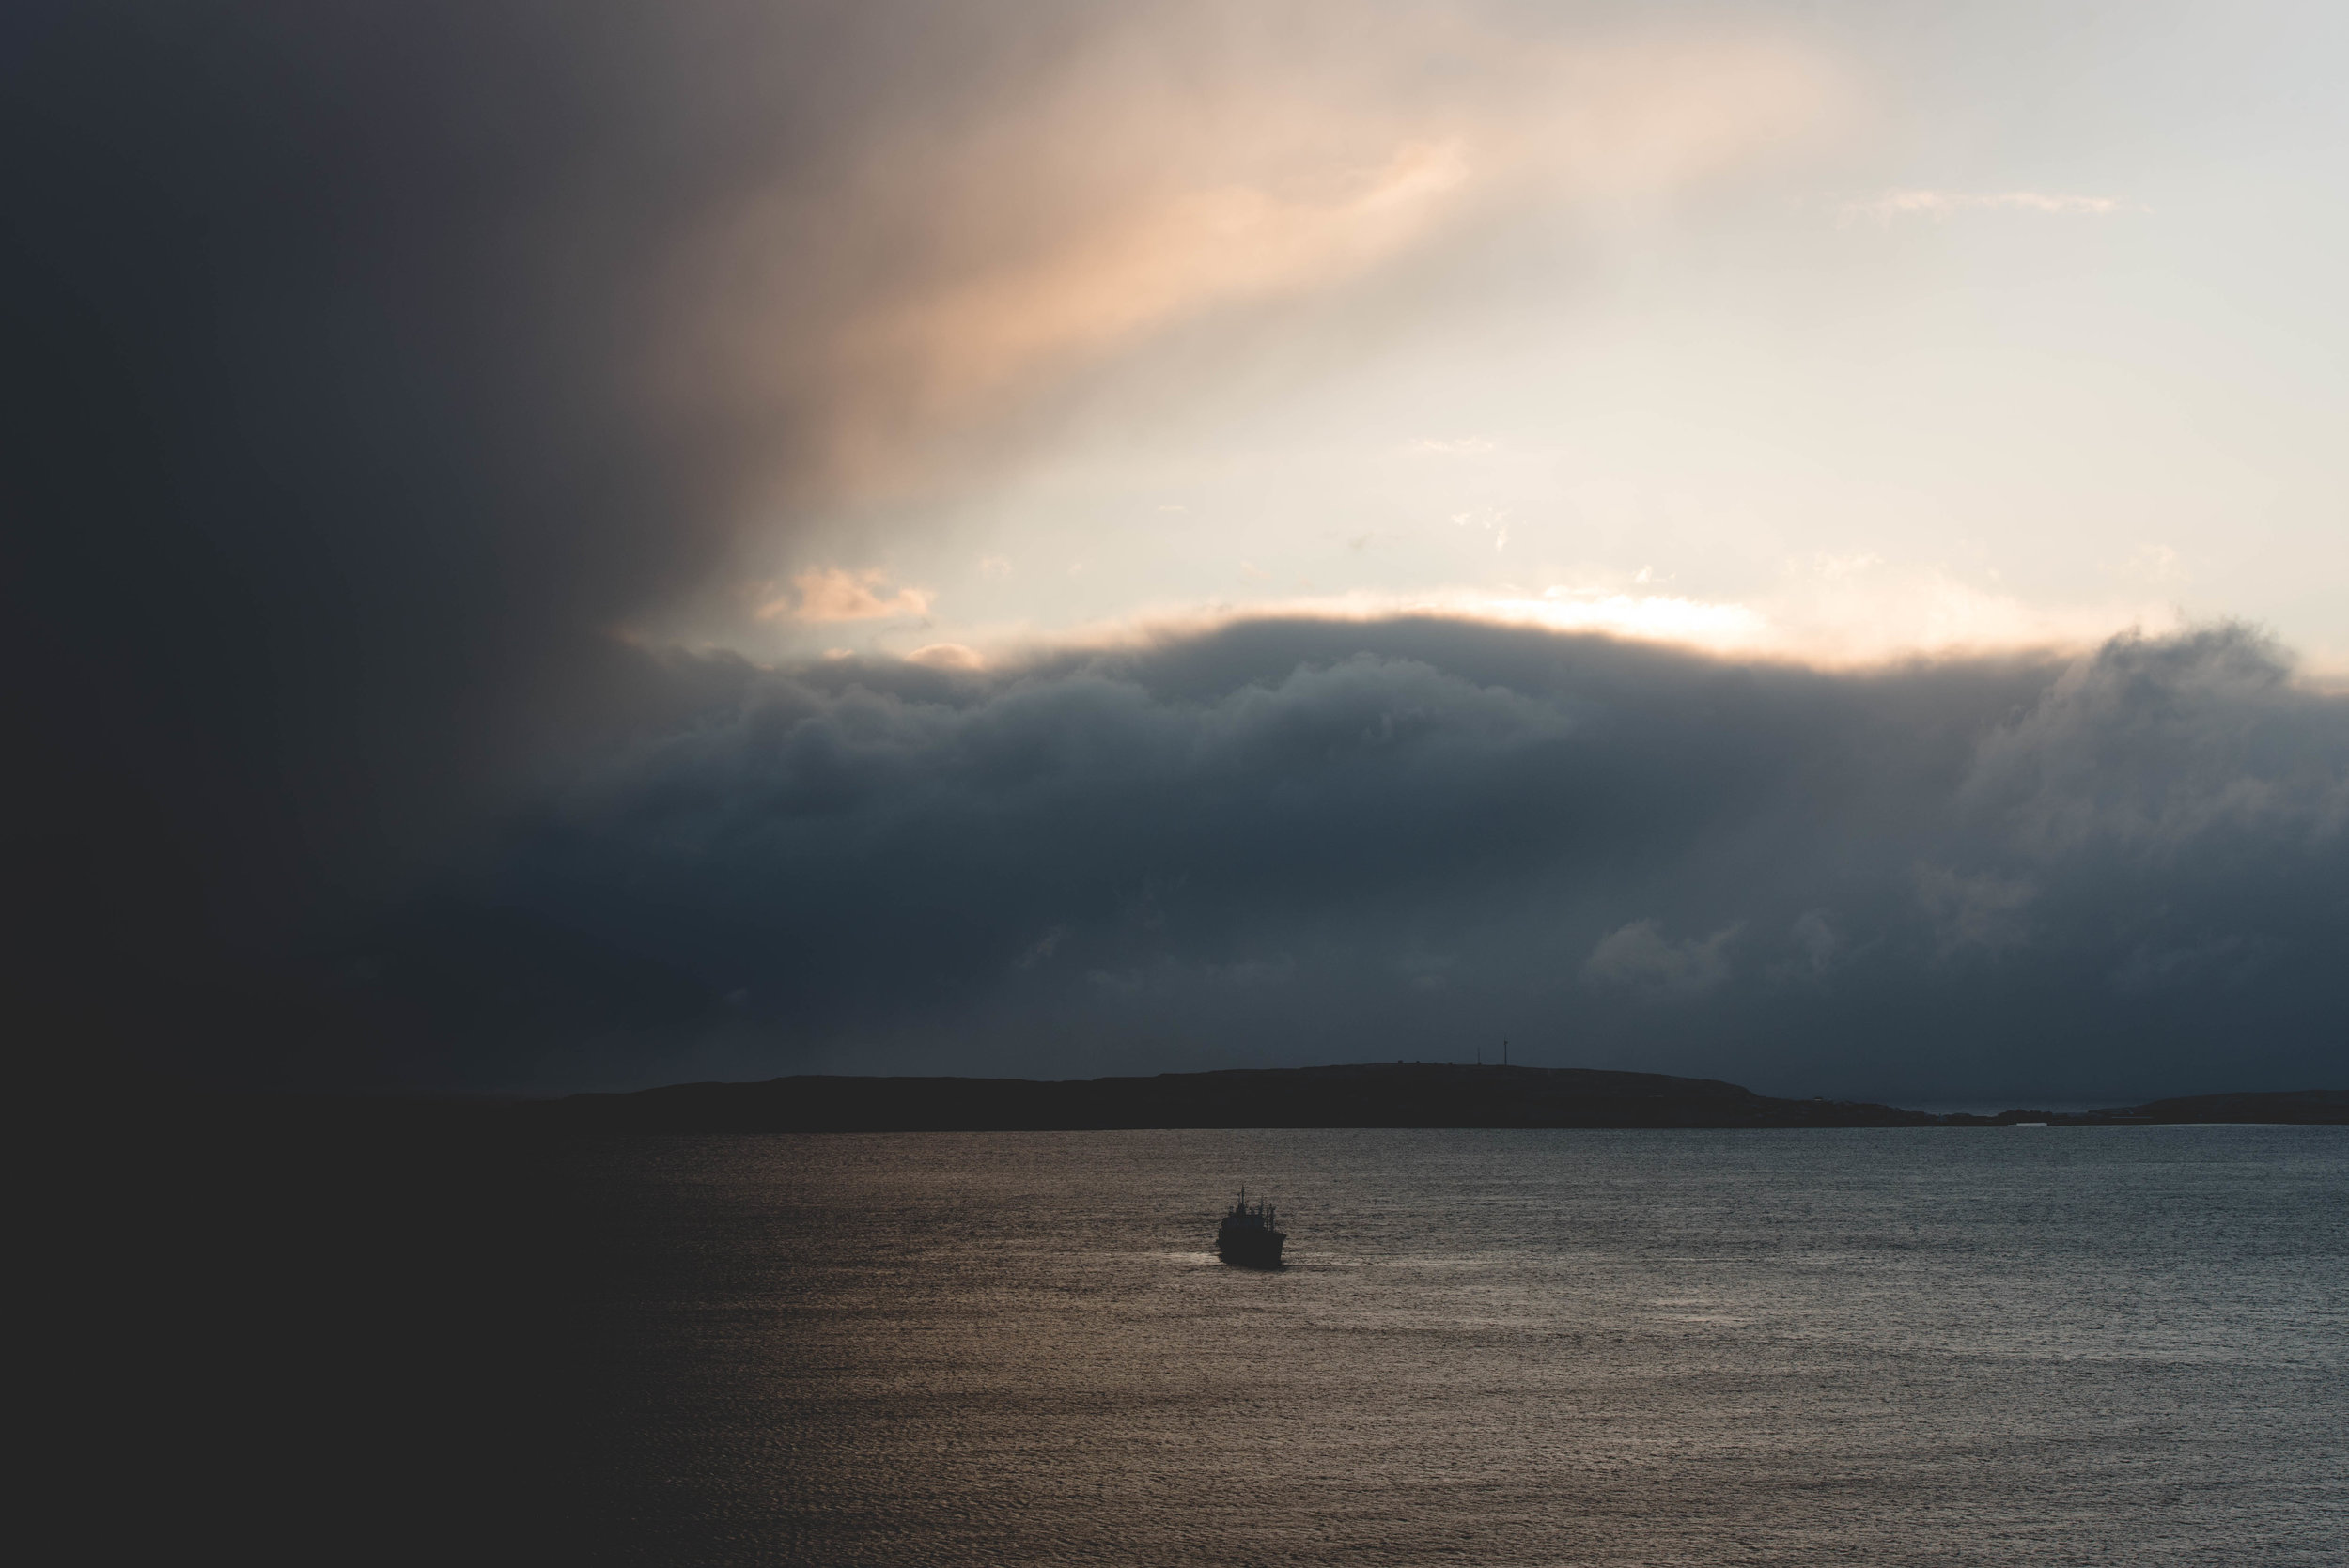 Sunrise over Nolsoy, storm clouds dissipating